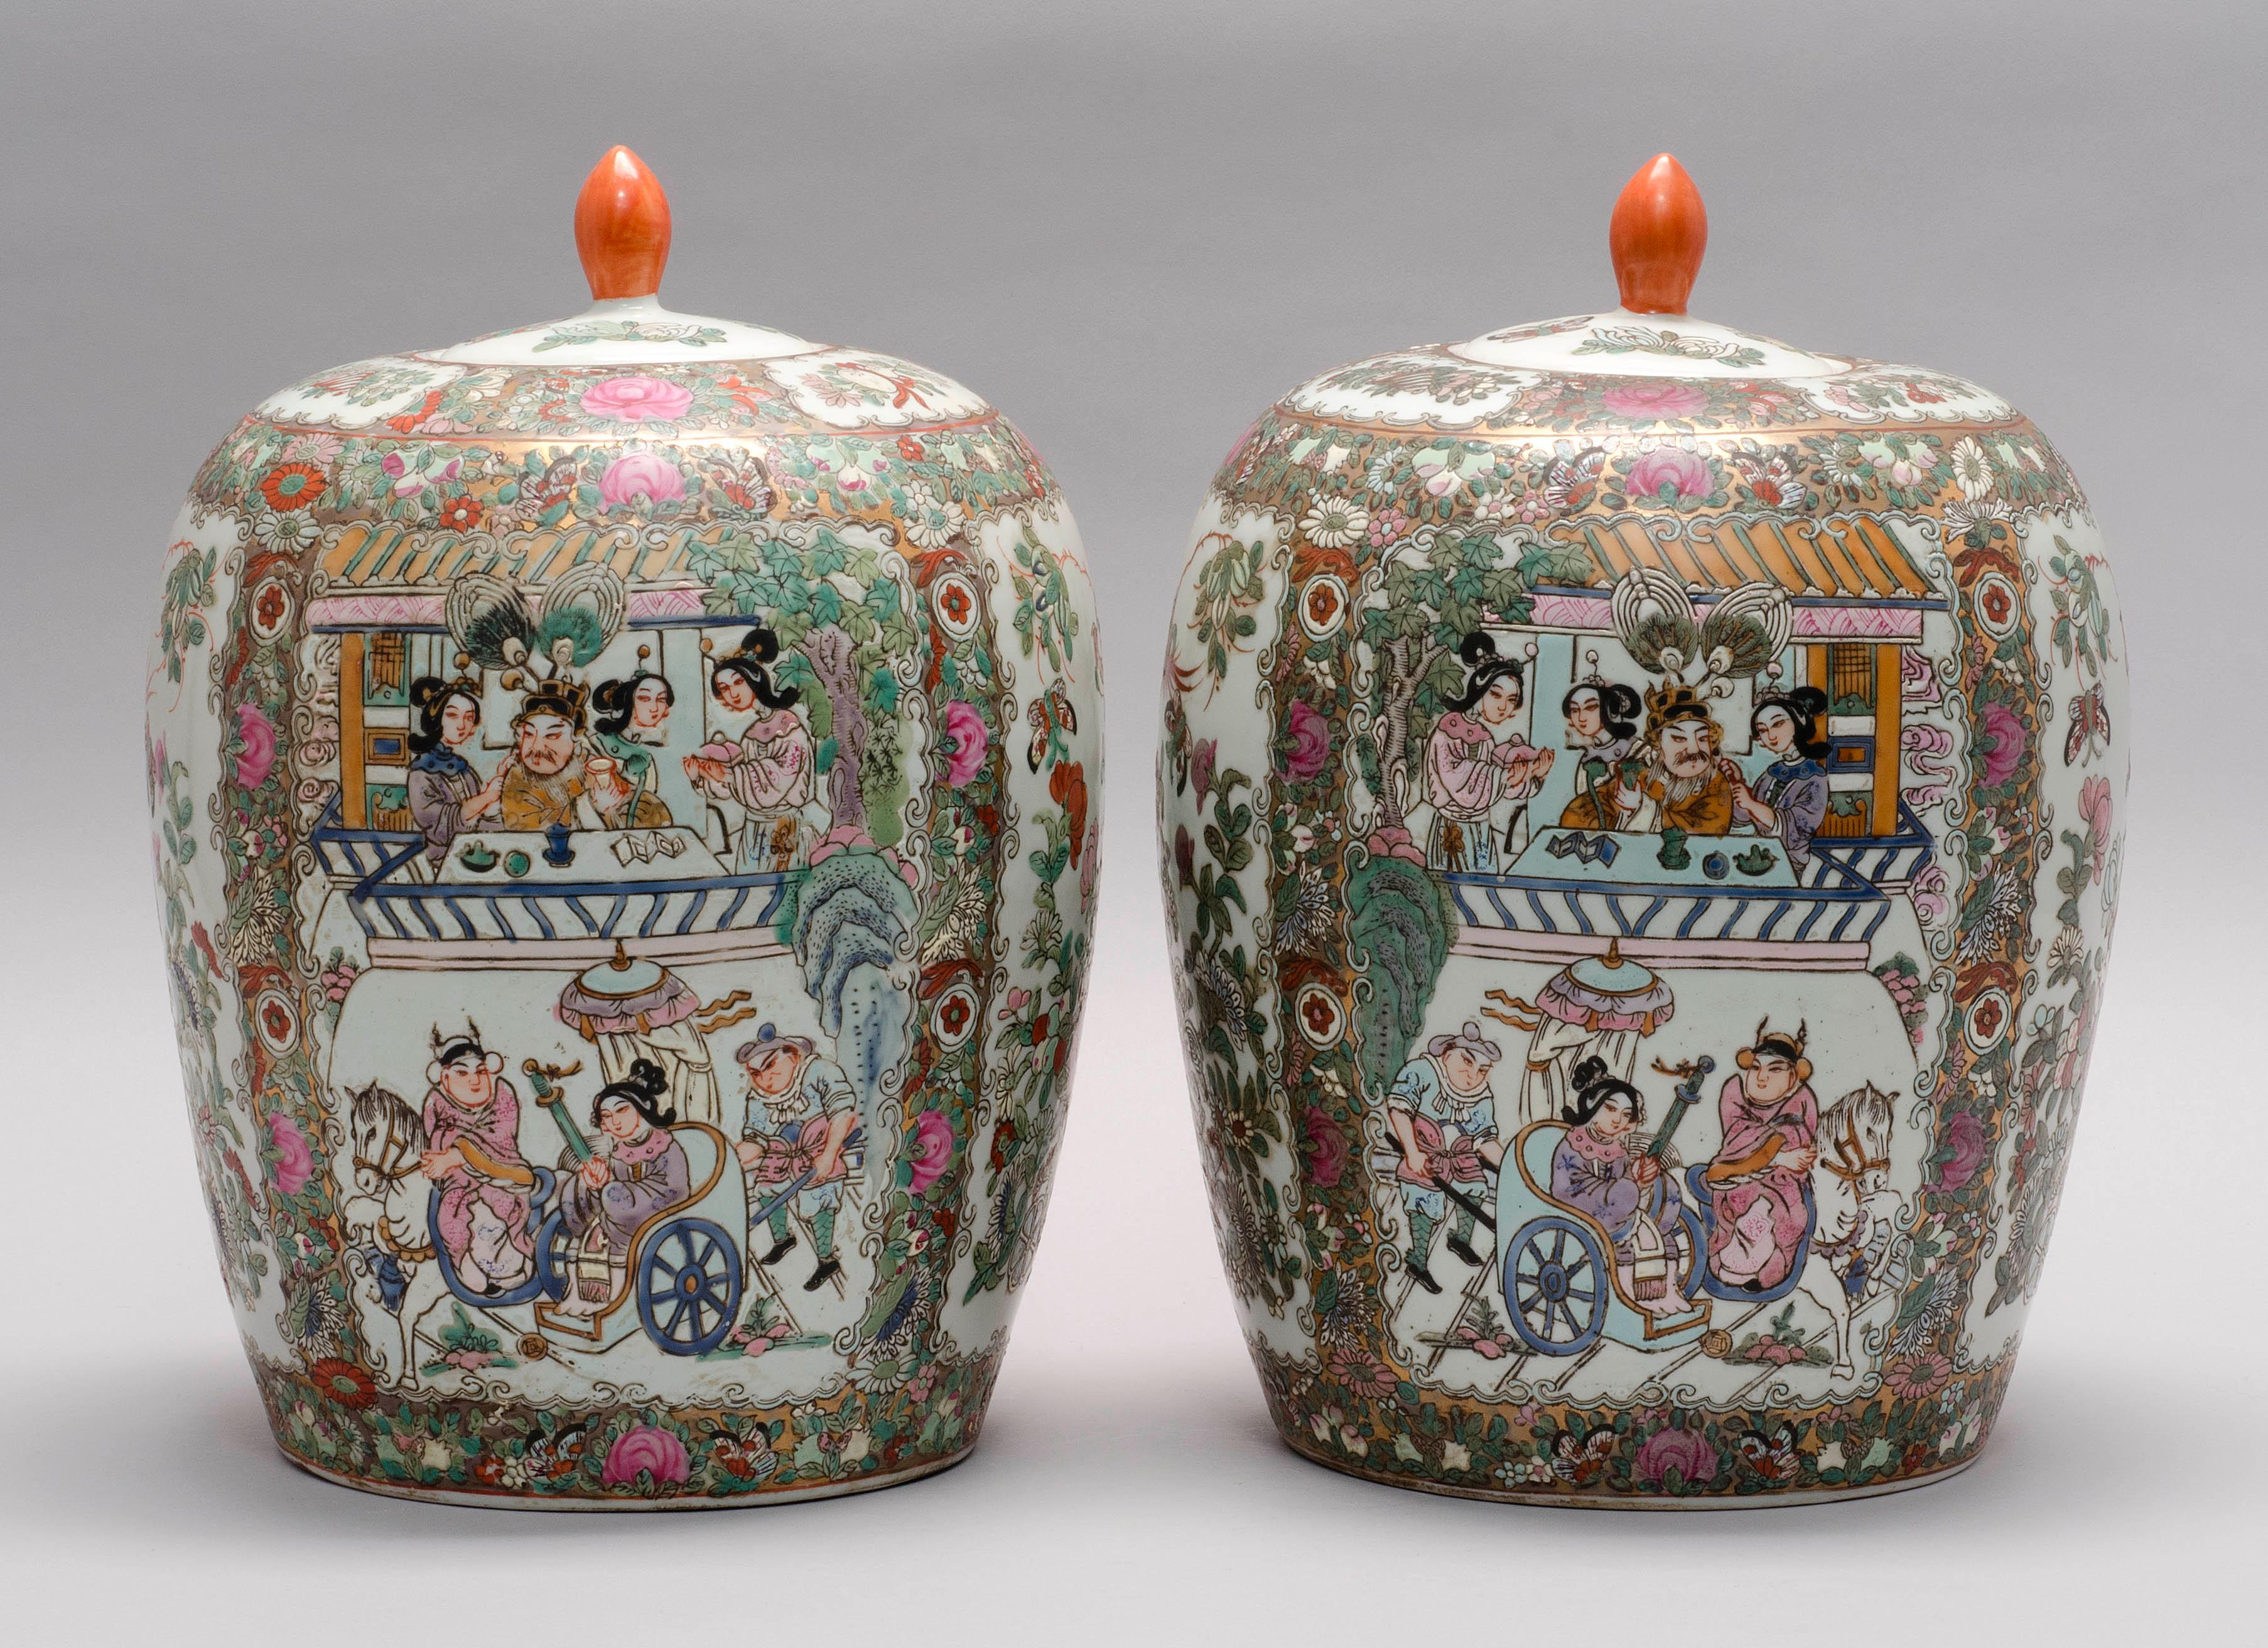 PAIR OF CHINESE PORCELAIN FAMILLE ROSE GINGER JARS With Rose Medallion figural and floral panels. Six-character Qianlong mark on bas...